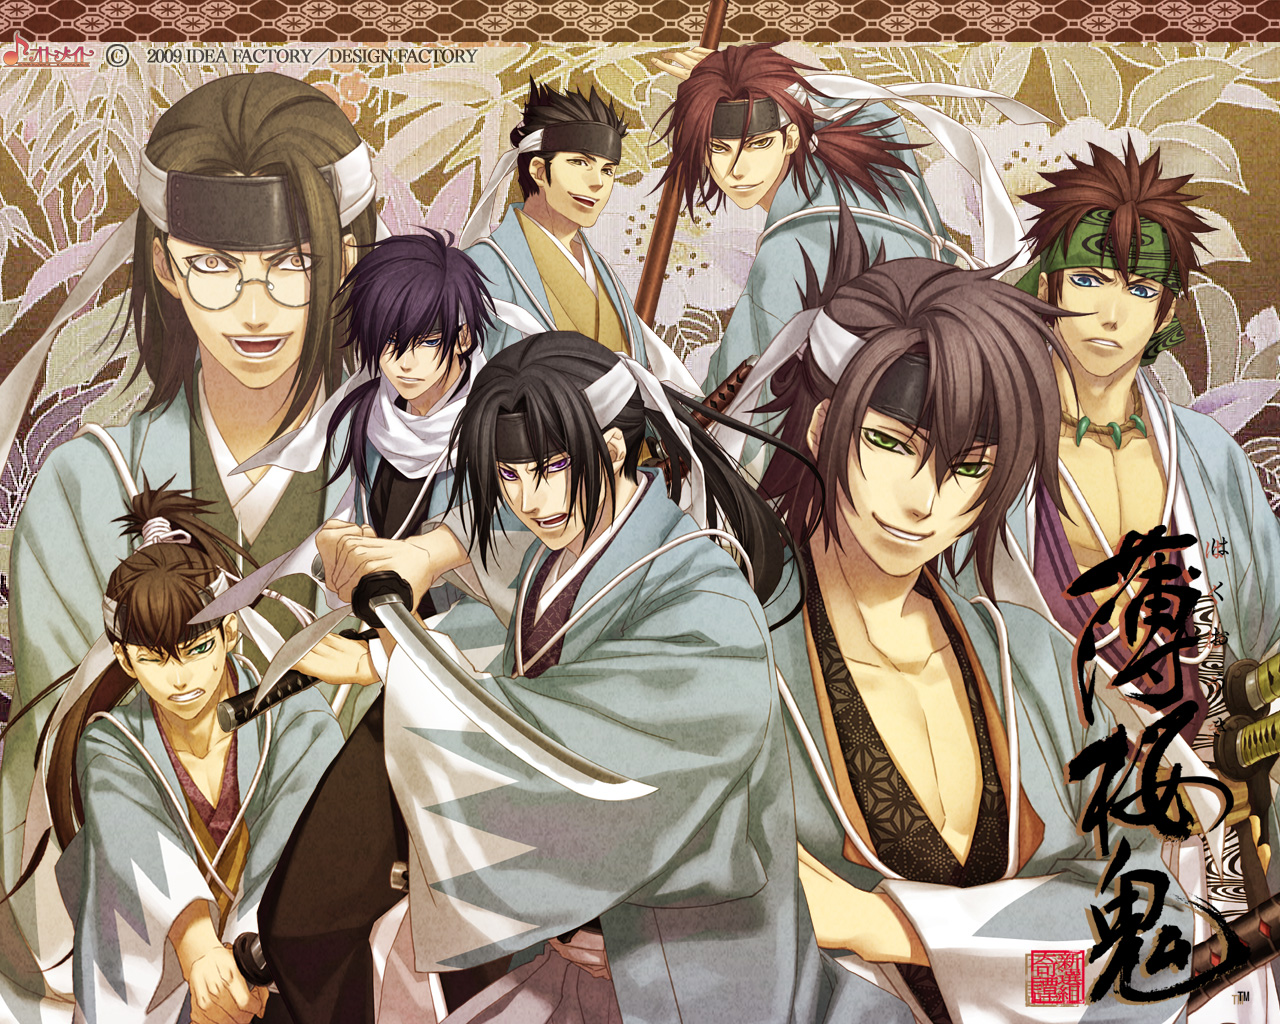 High Resolution Wallpaper | Hakuouki Shinsengumi Kitan 1280x1024 px